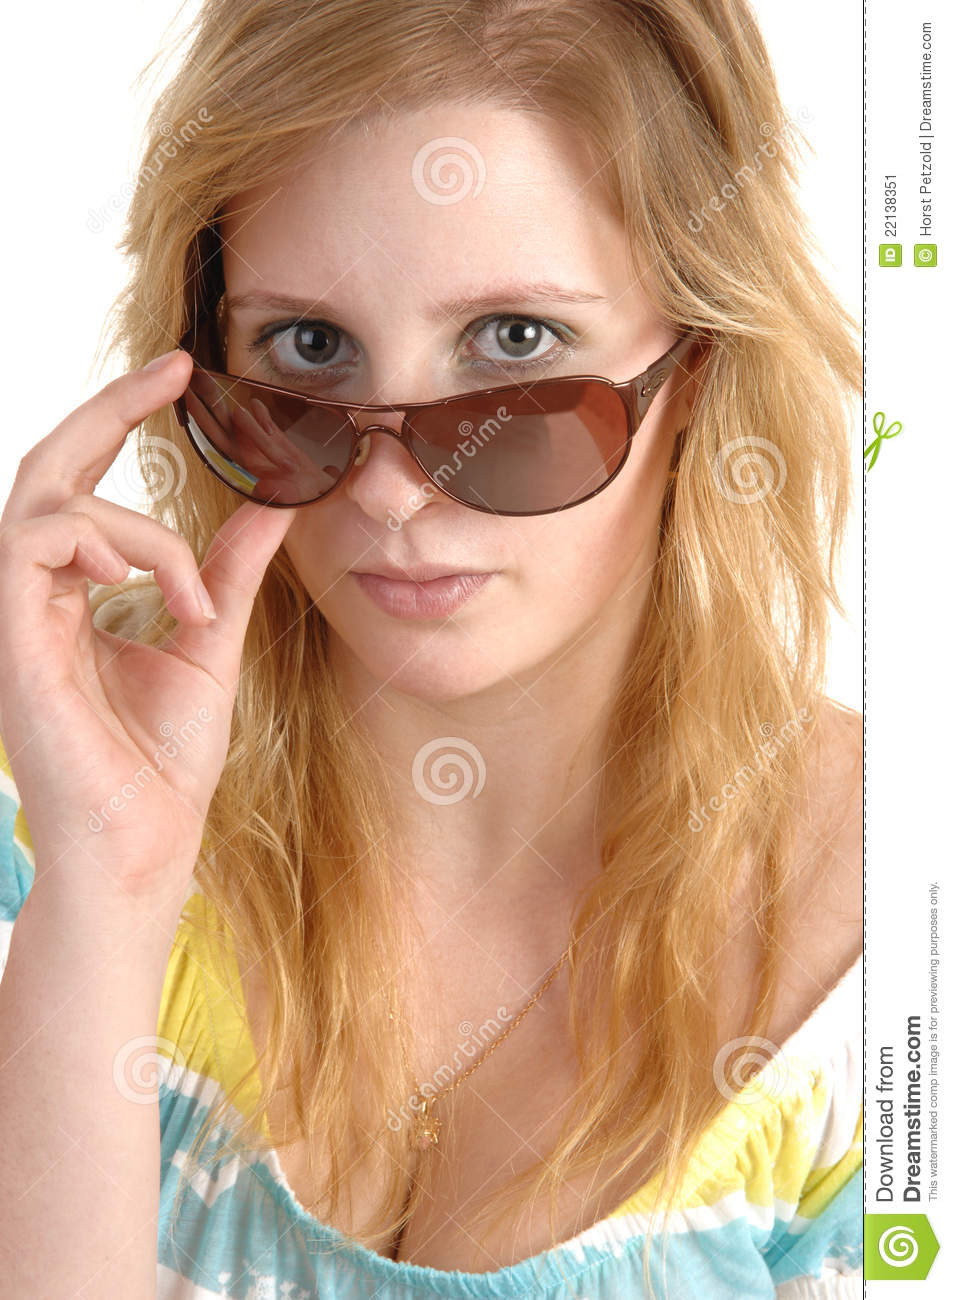 Of blond teen holding sunglasses we've created